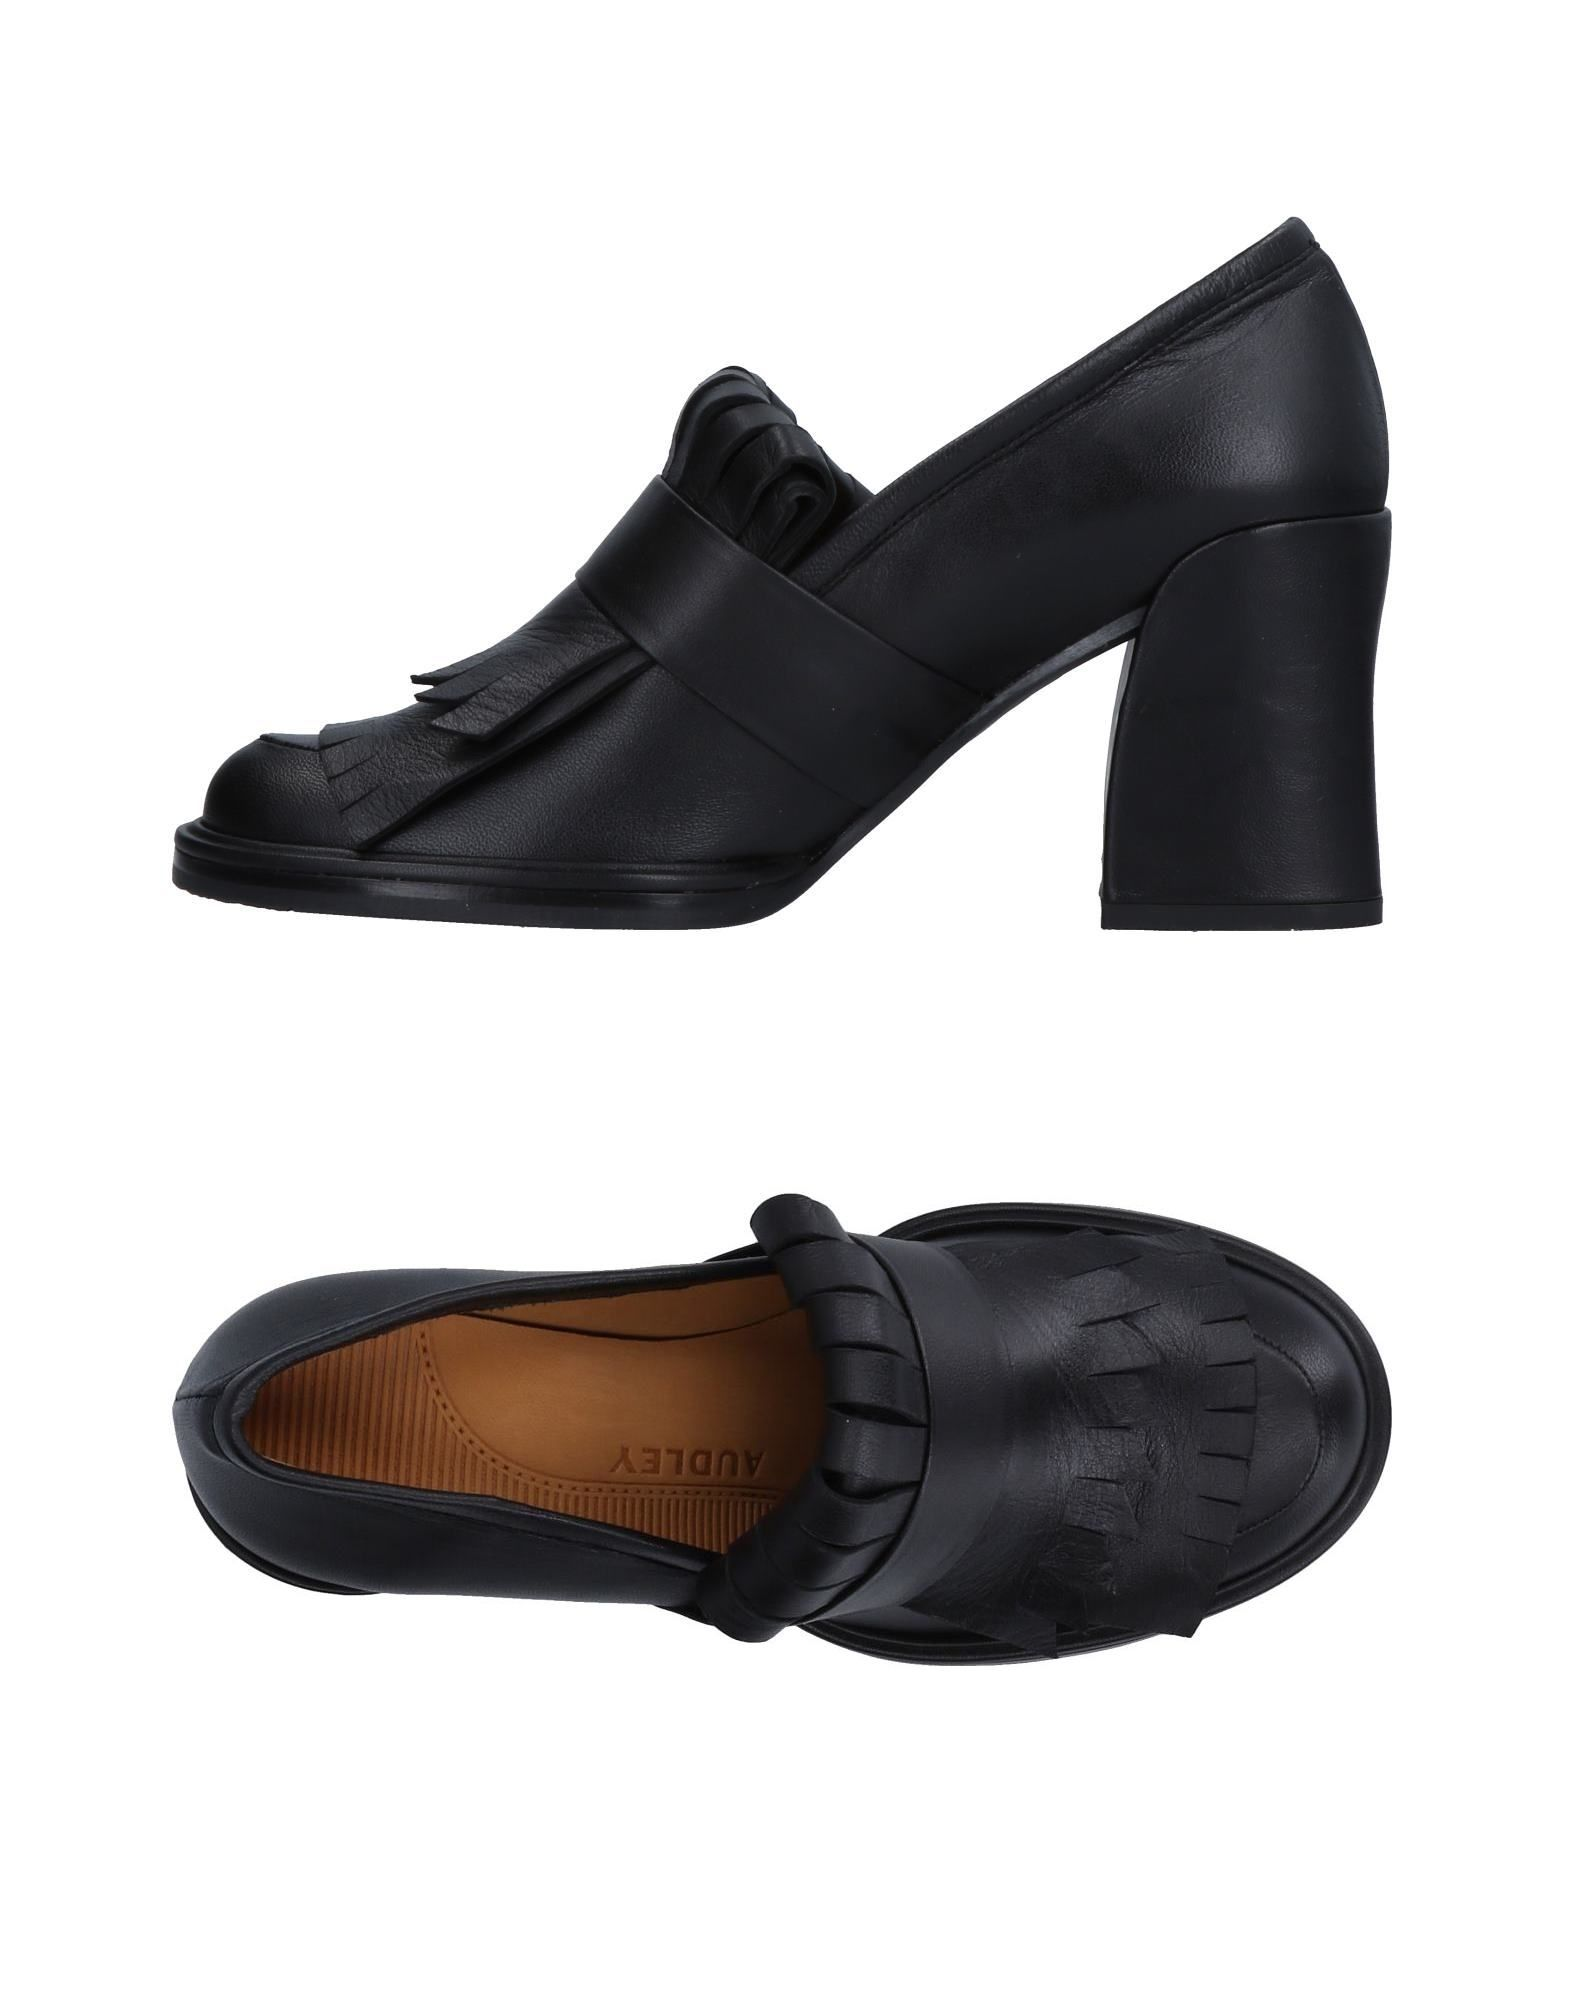 Audley Loafers - Women Audley Australia Loafers online on  Australia Audley - 11509468IF 6de0c6